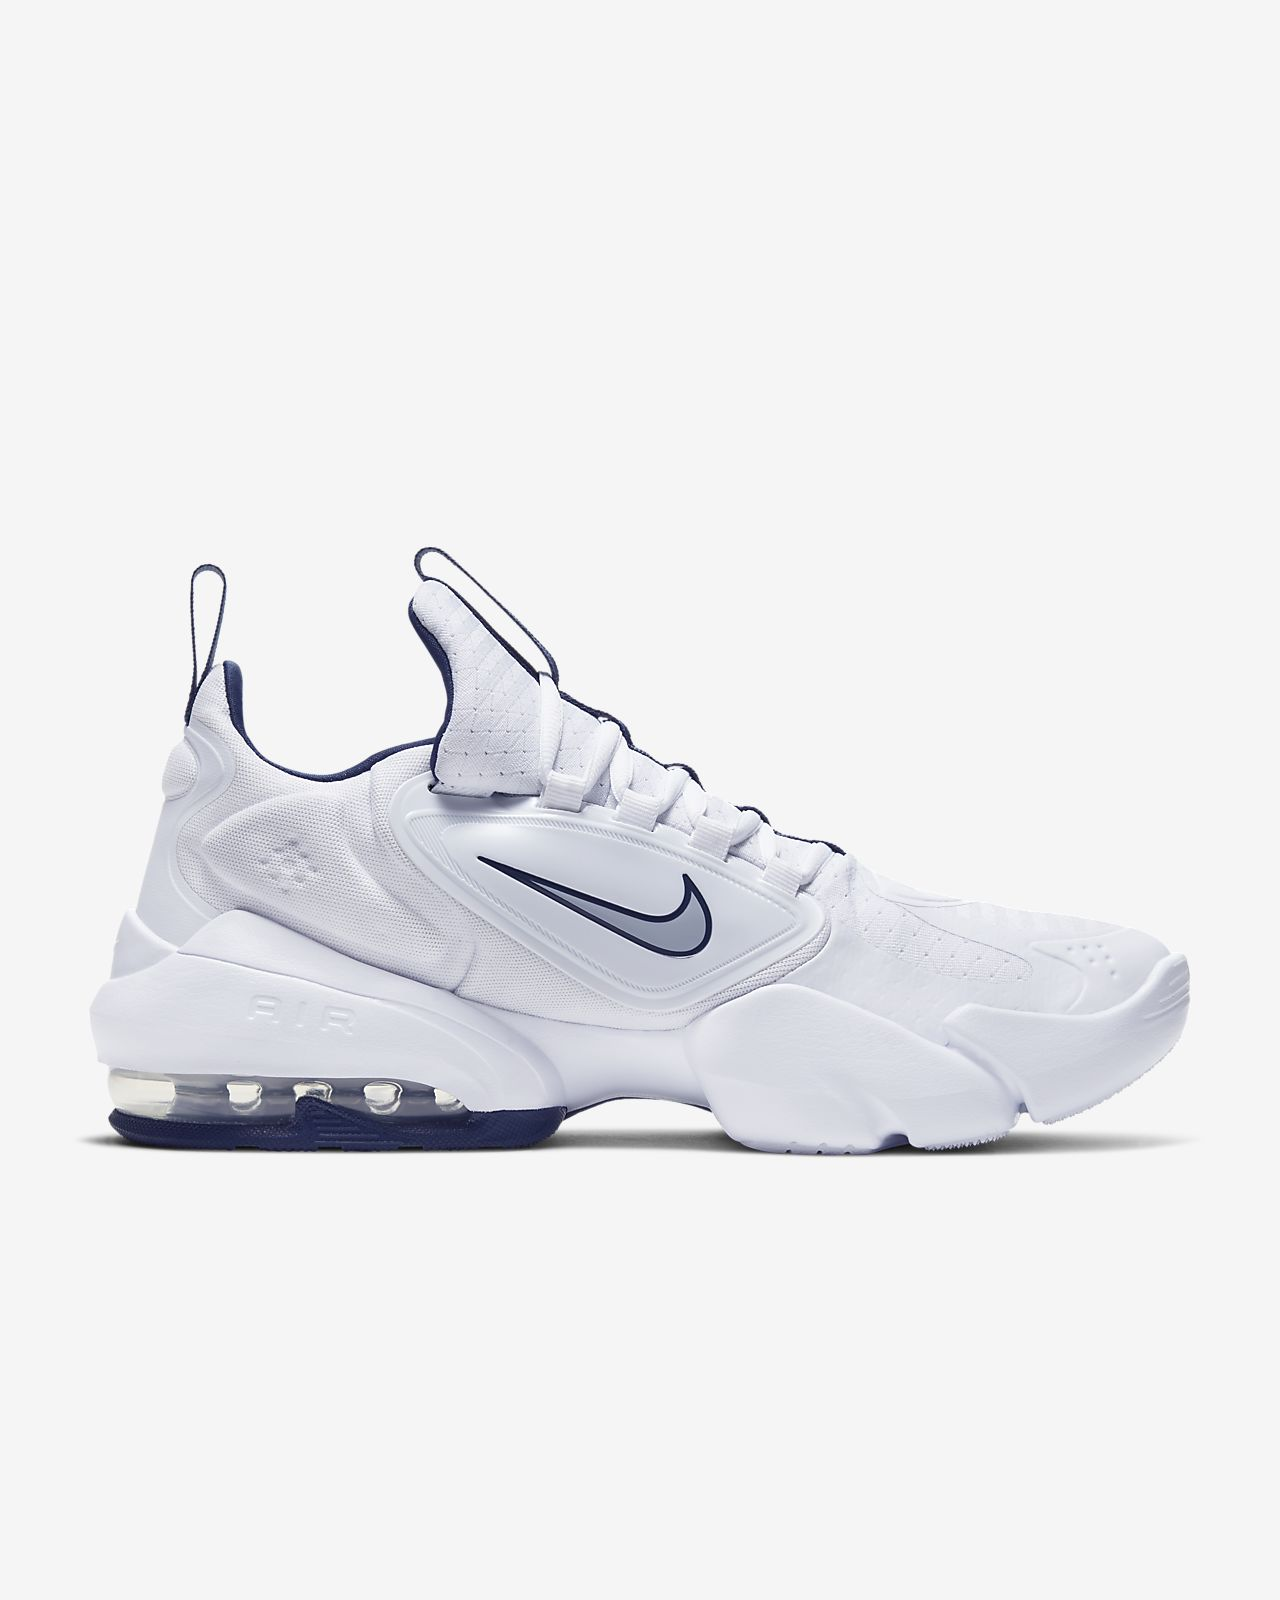 Nike Air Max Zero Neymar Jr. Air Max Day | Nike air max